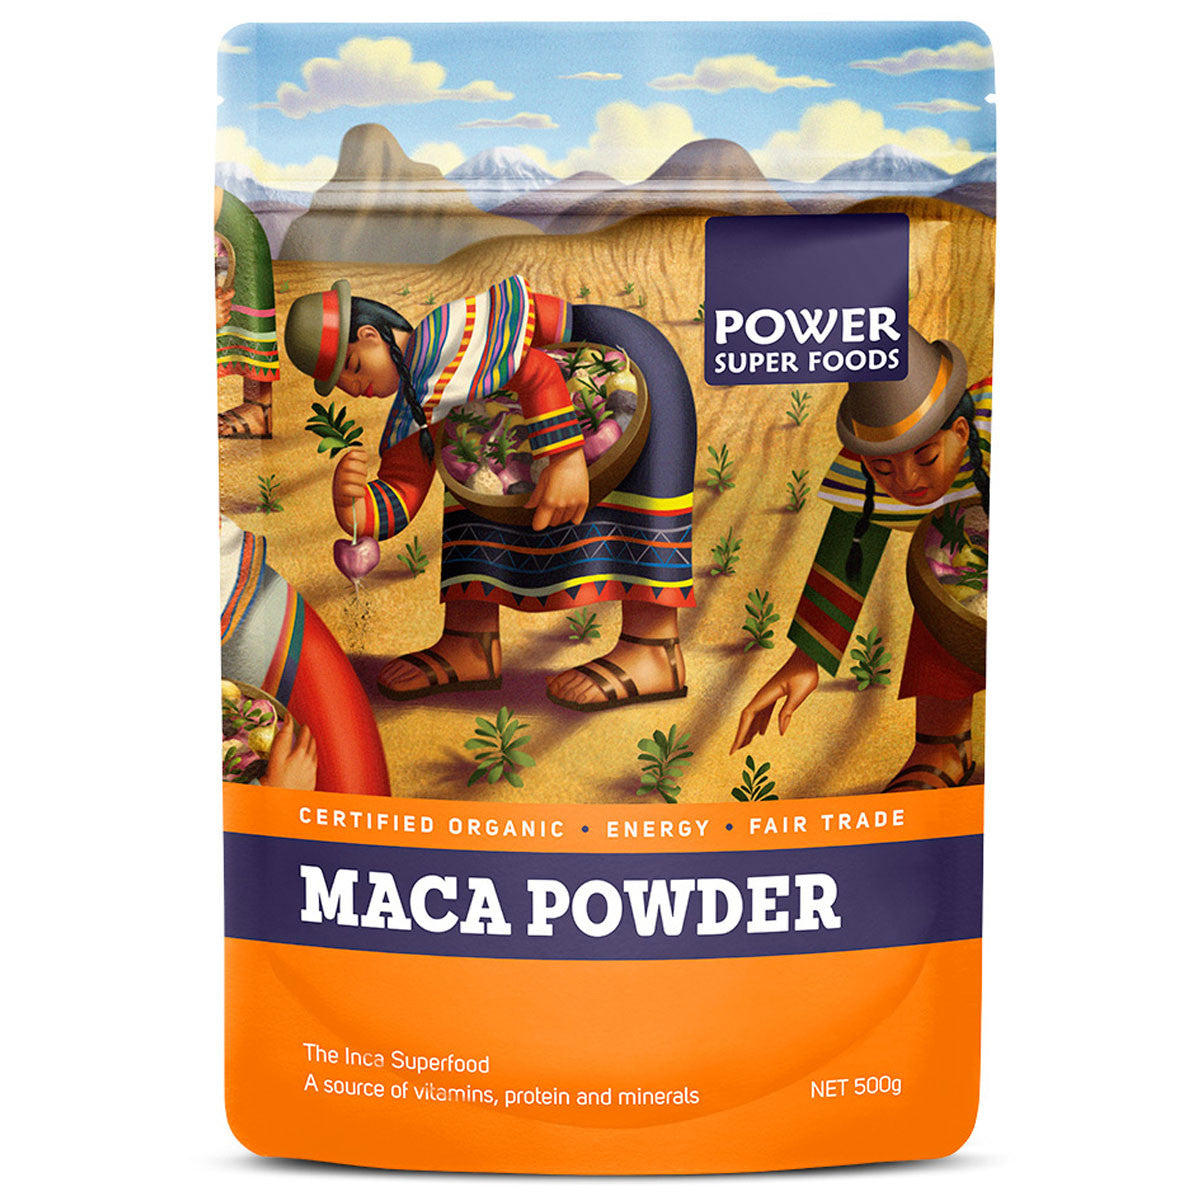 Power Super Foods Maca Powder Power Super Foods General 500g at Little Earth Nest Eco Shop